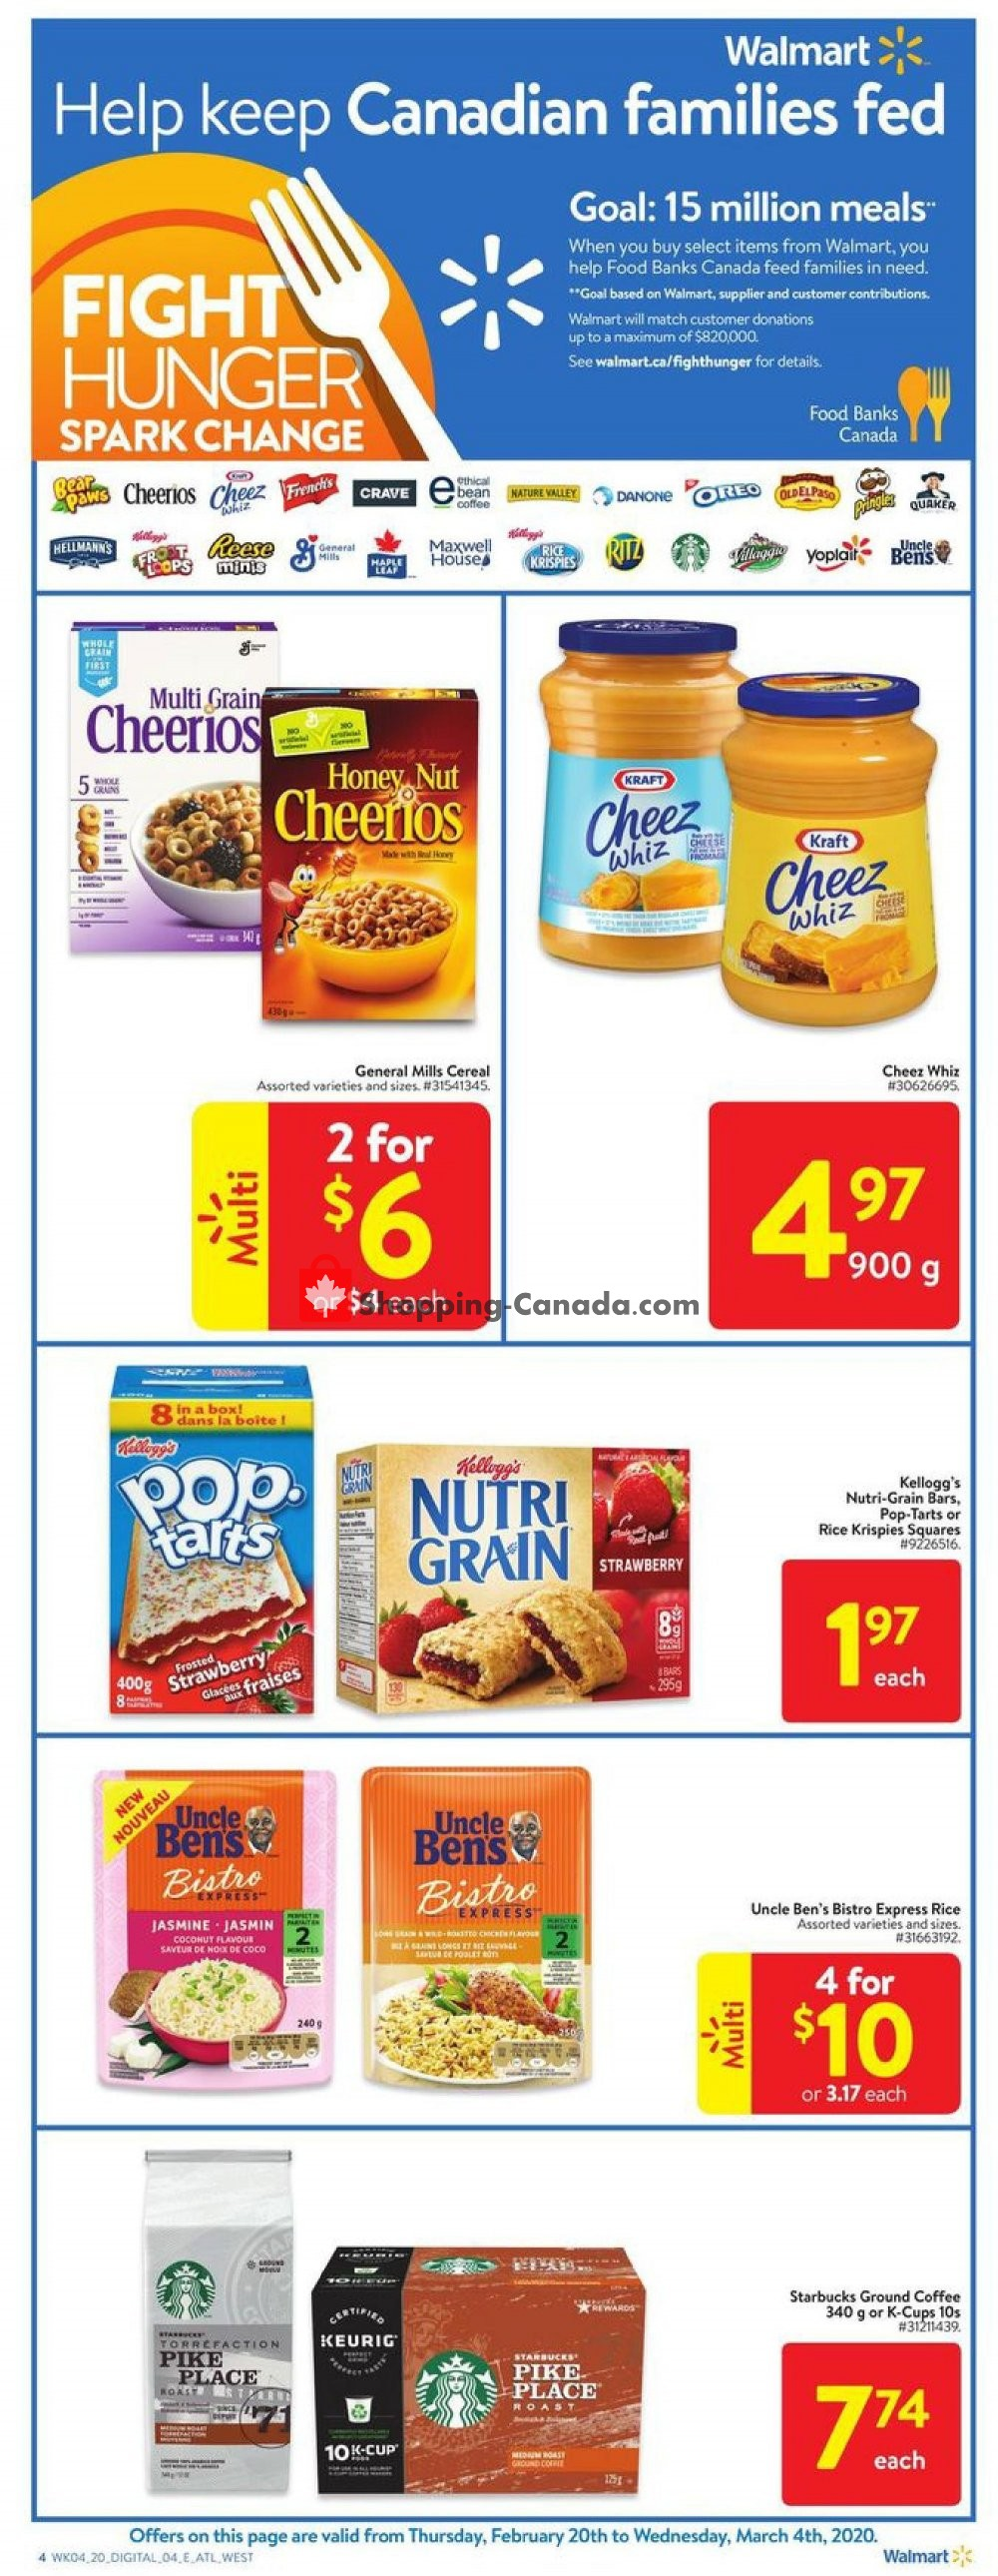 Flyer Walmart Canada - from Thursday February 20, 2020 to Wednesday March 4, 2020